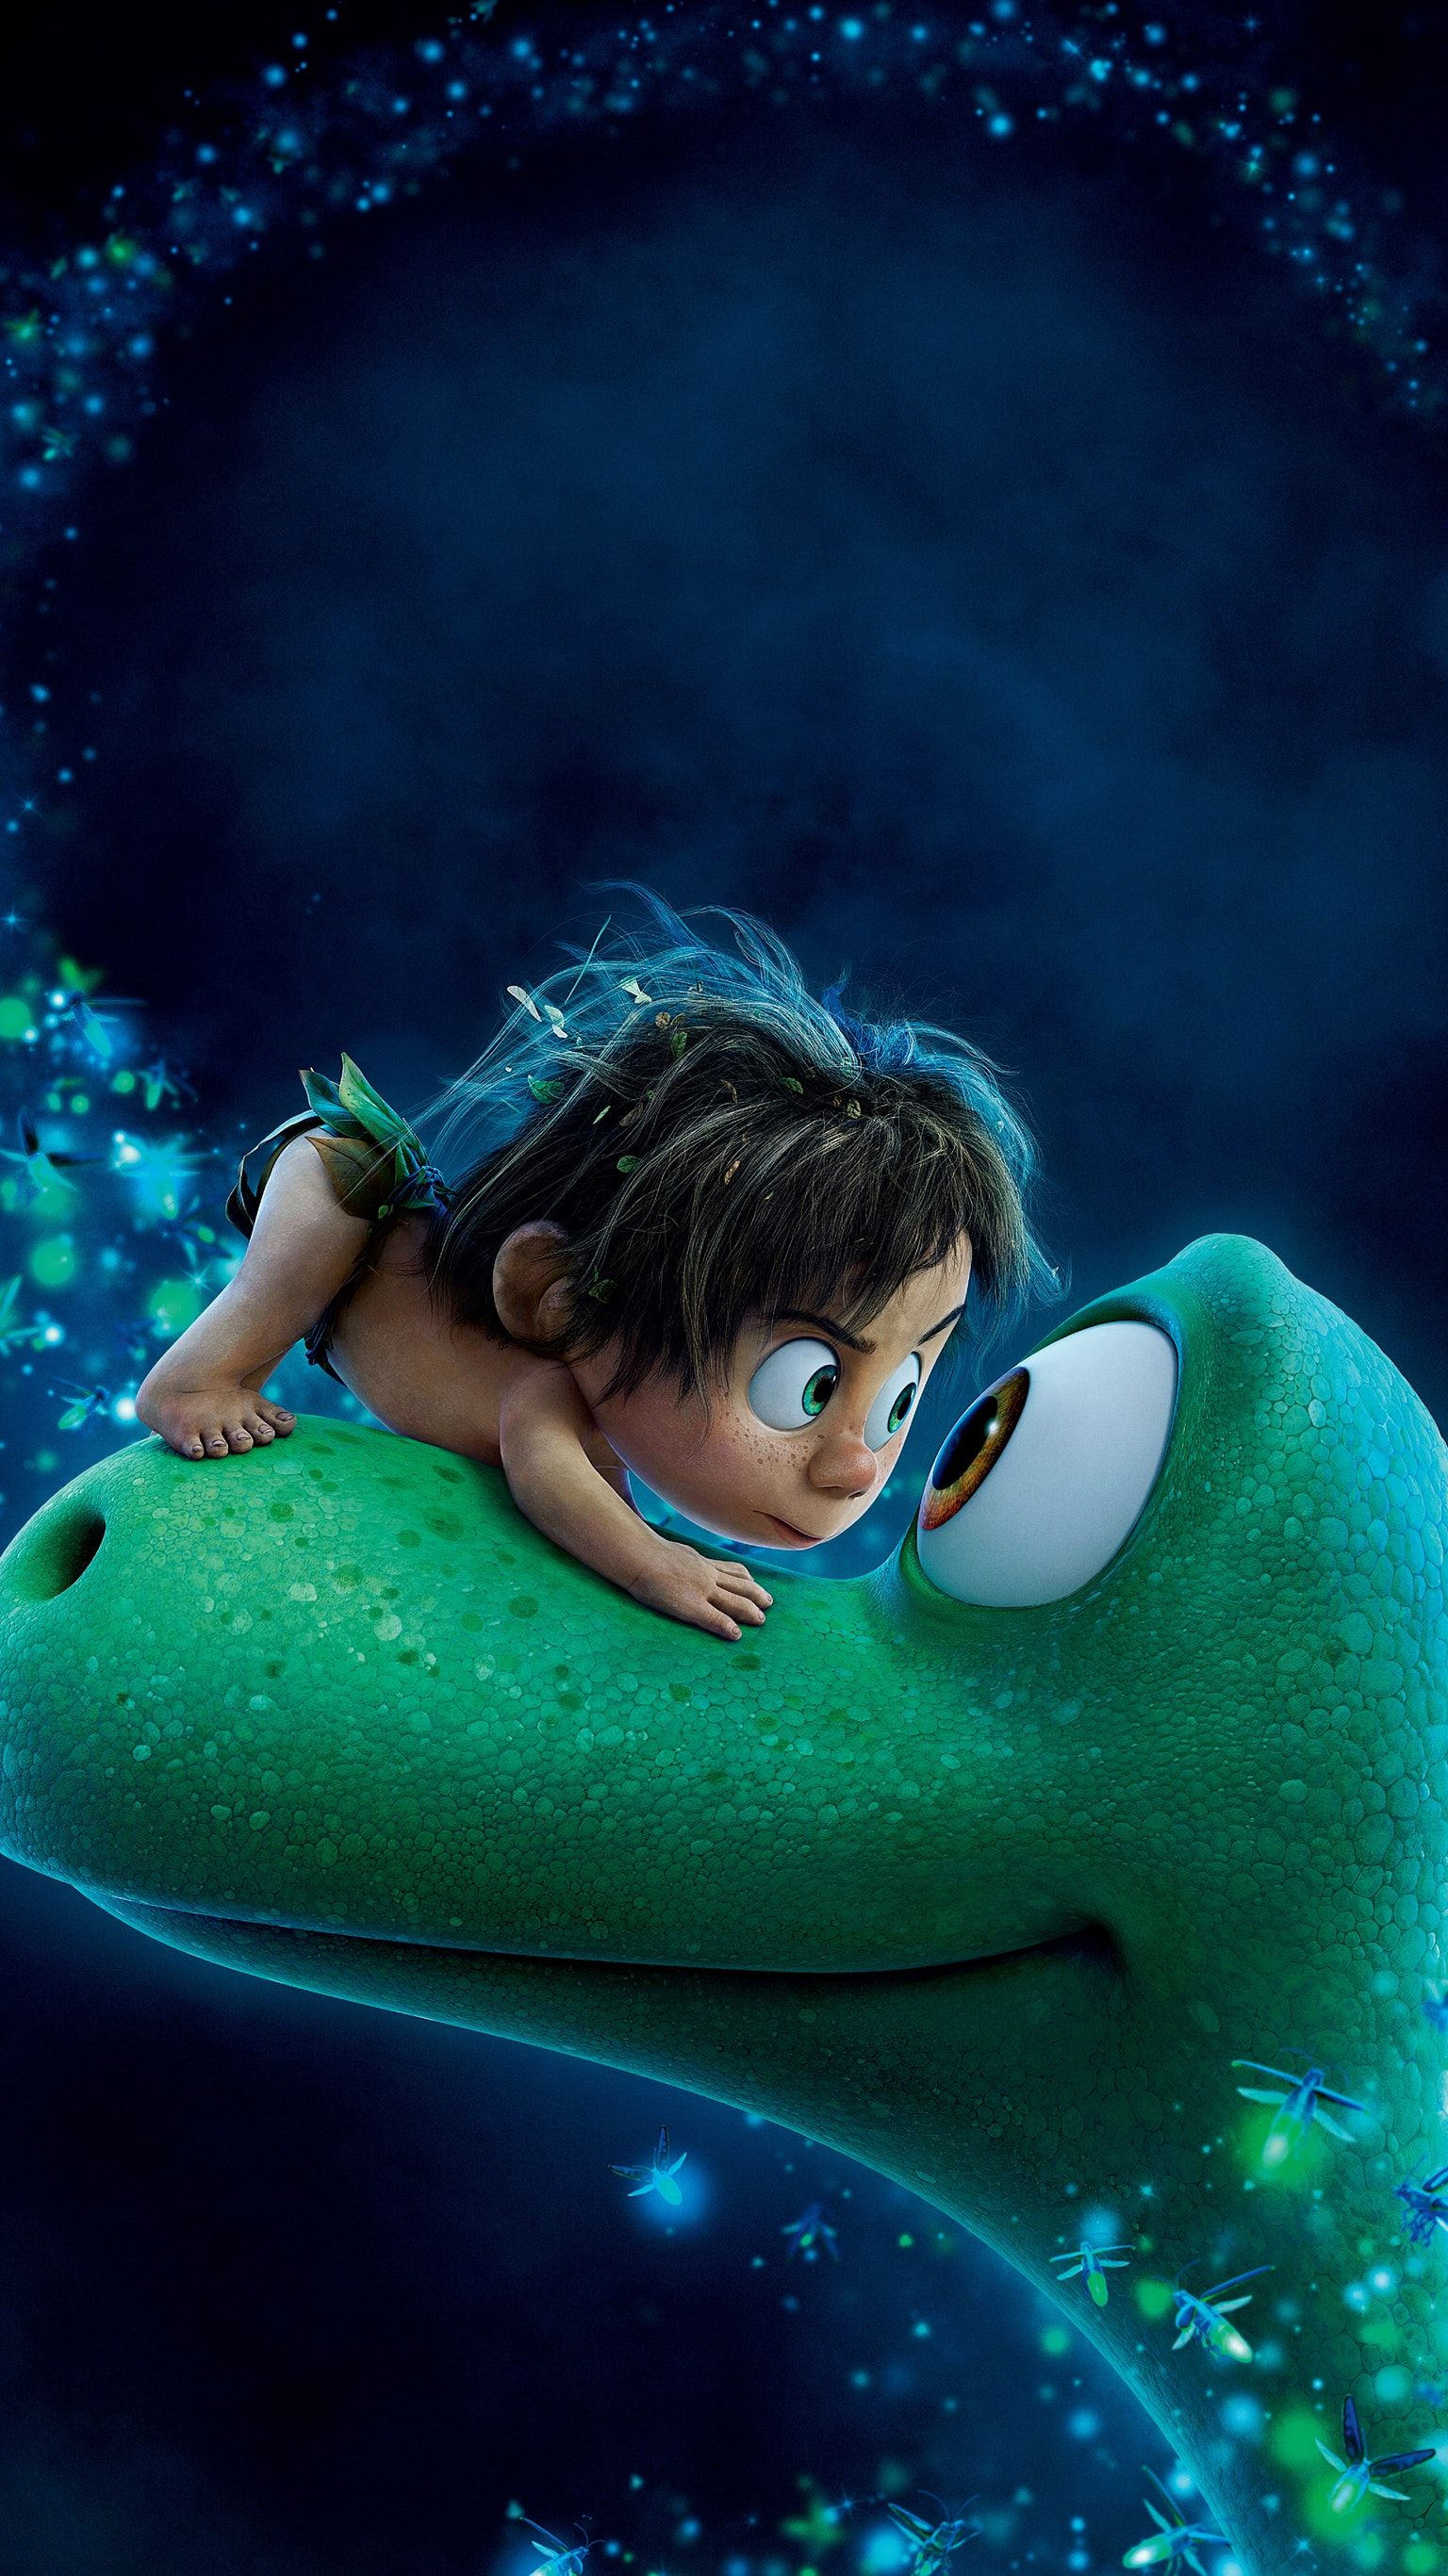 The good dinosaur phone wallpaper movie wallpapers